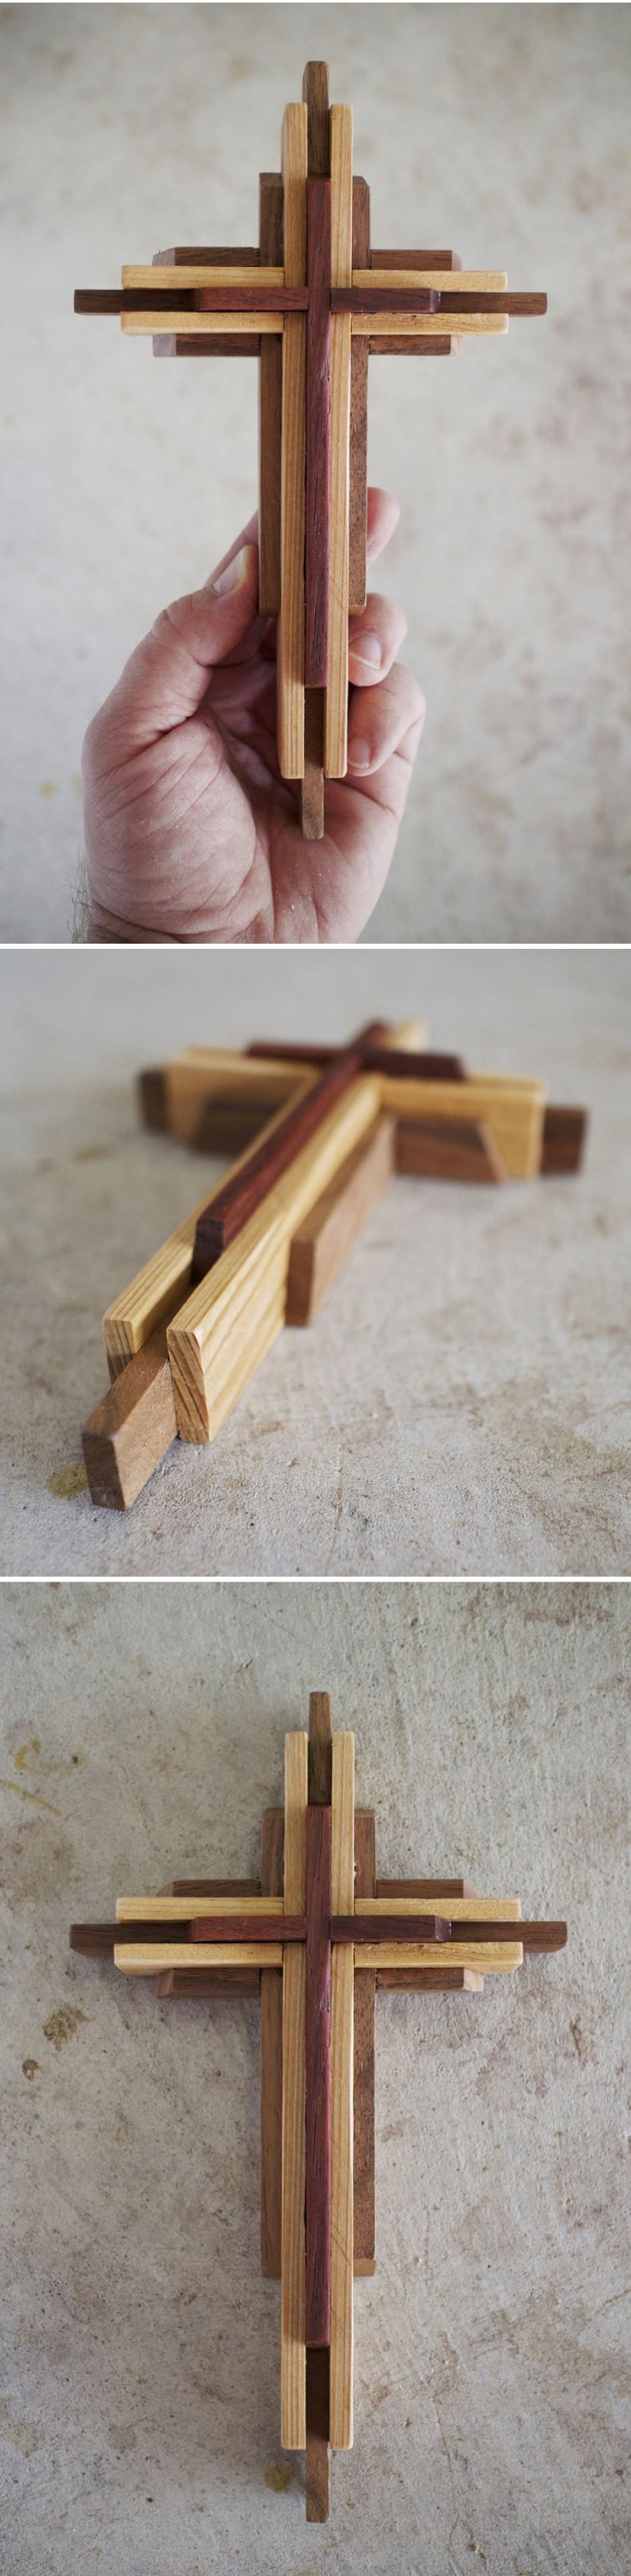 Black and white large cross one of a kind reclaimed wood cross diy 9 inch wood cross plans amipublicfo Gallery